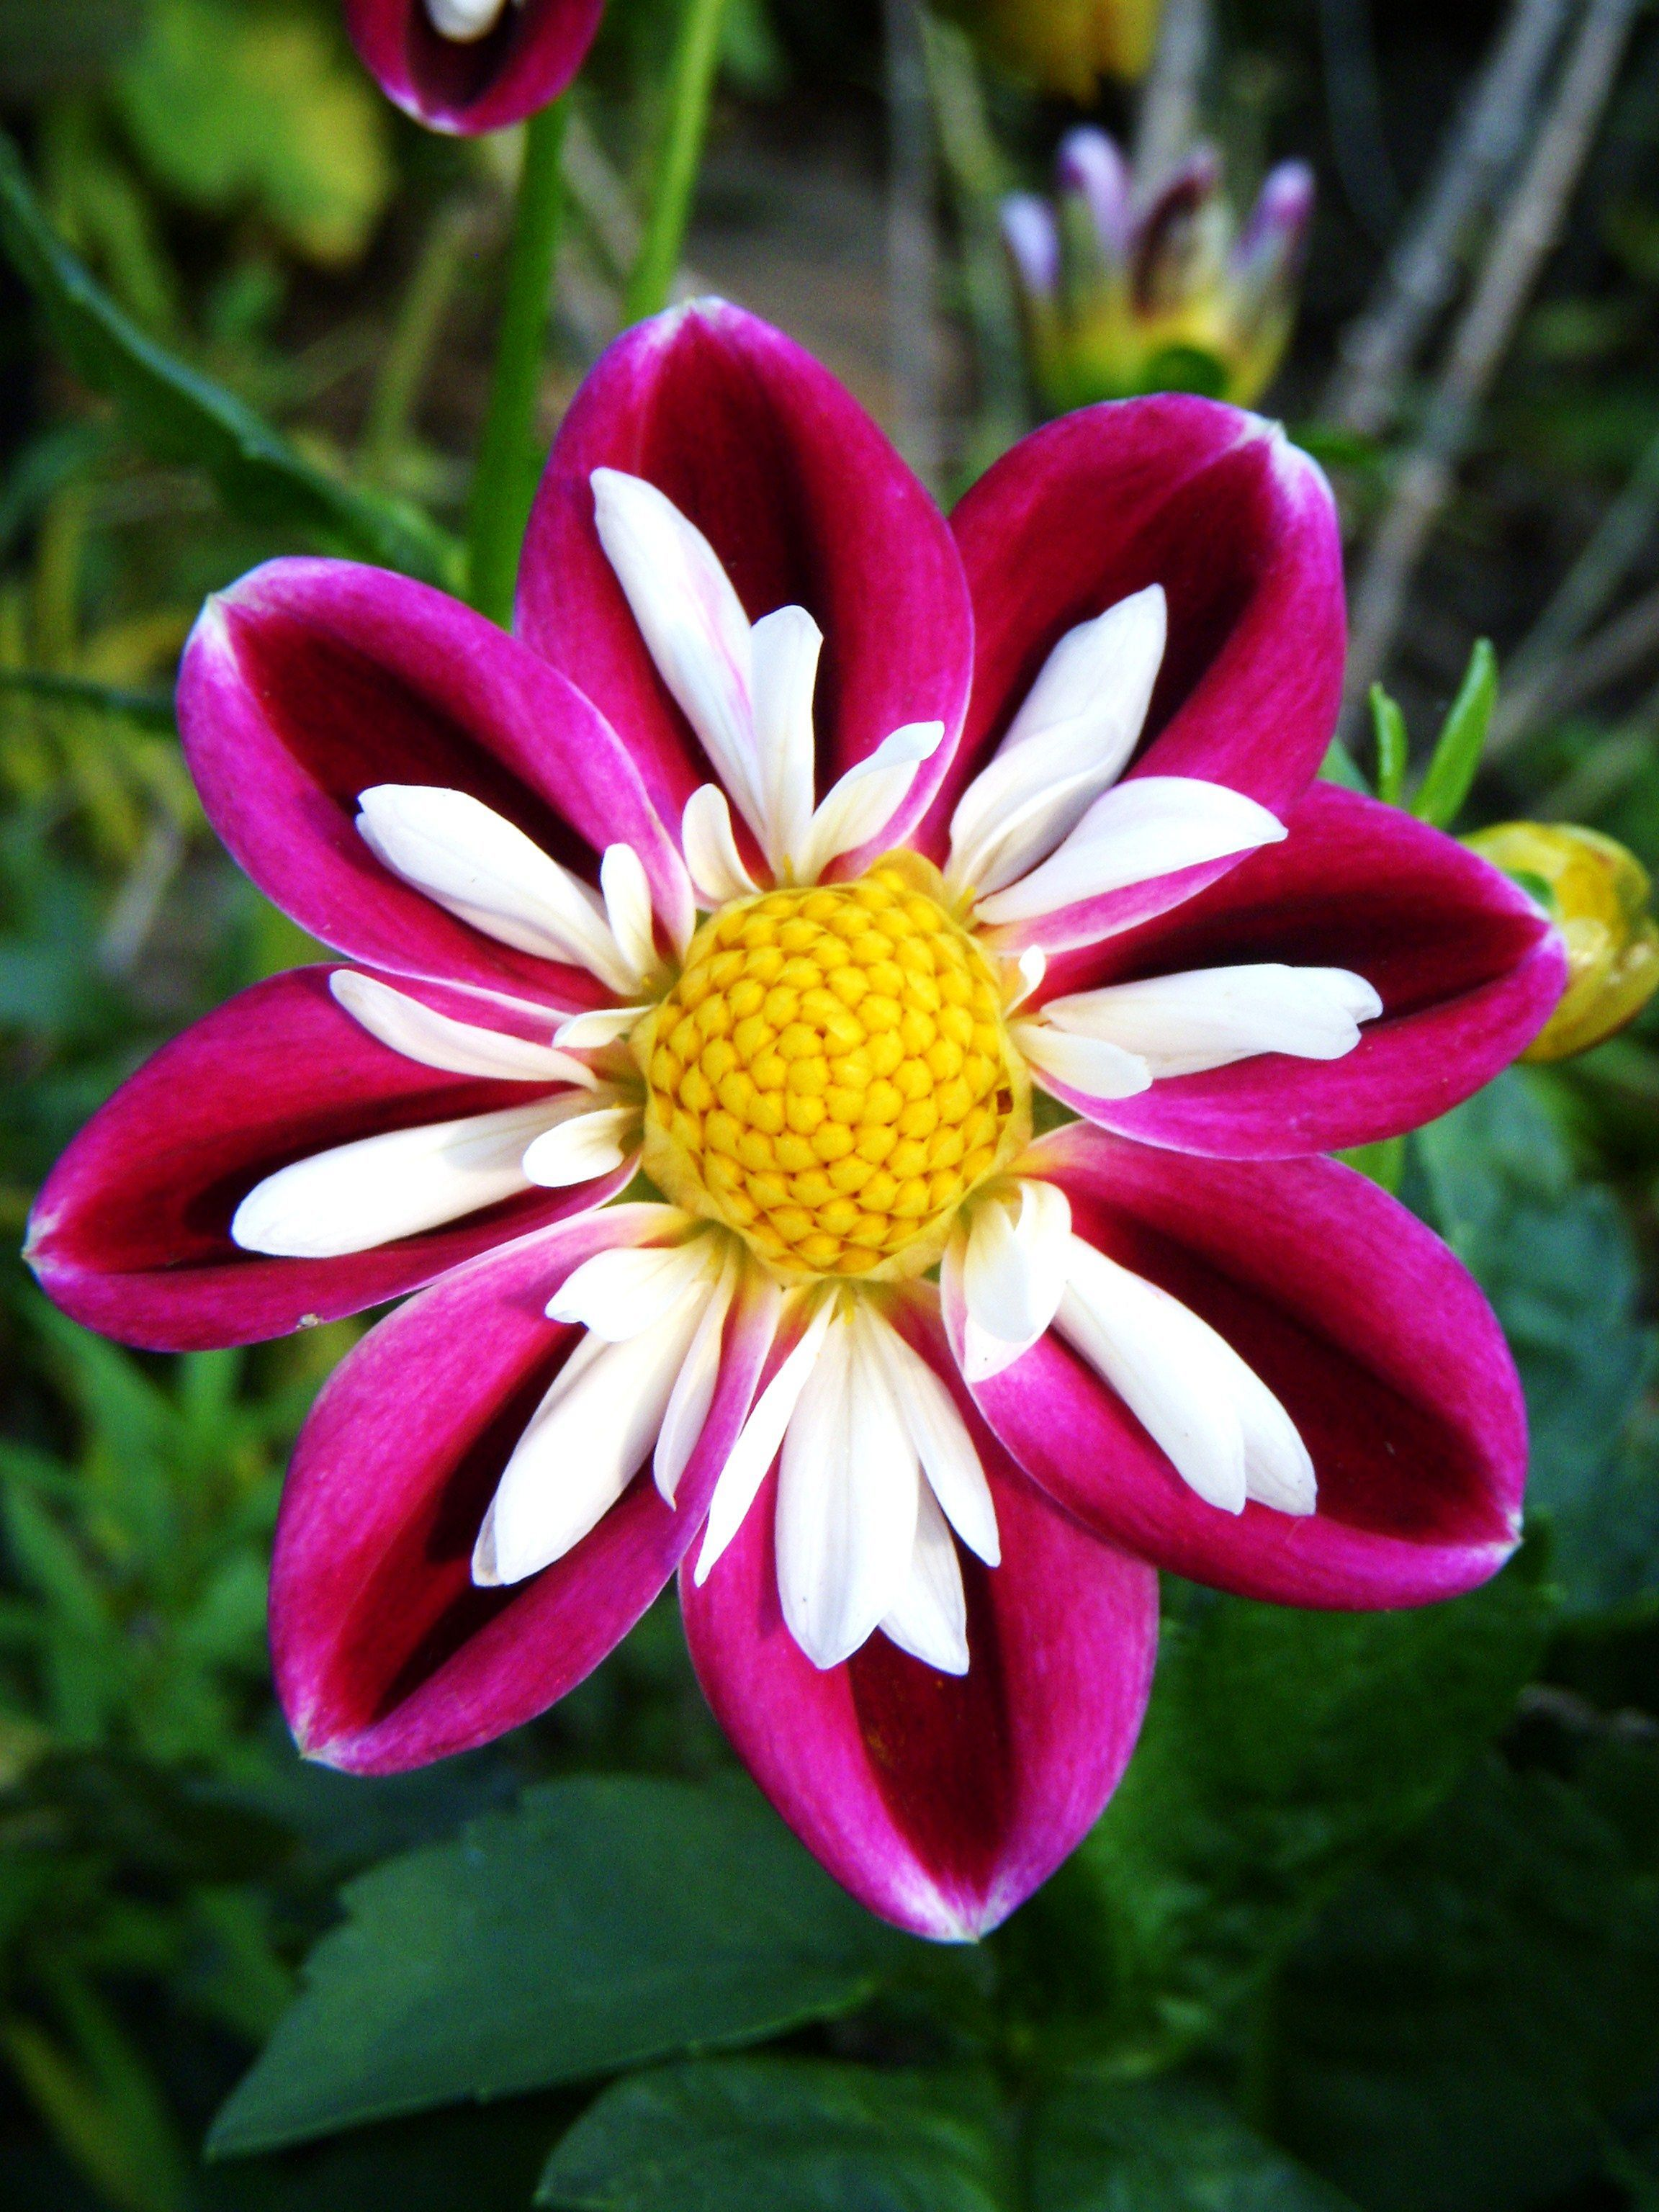 45 beautiful and unique flower you should have in your garden epic 45 beautiful and unique flower you should have in your garden httpgoodsgngardens45 beautiful and unique flower you should have in your garden izmirmasajfo